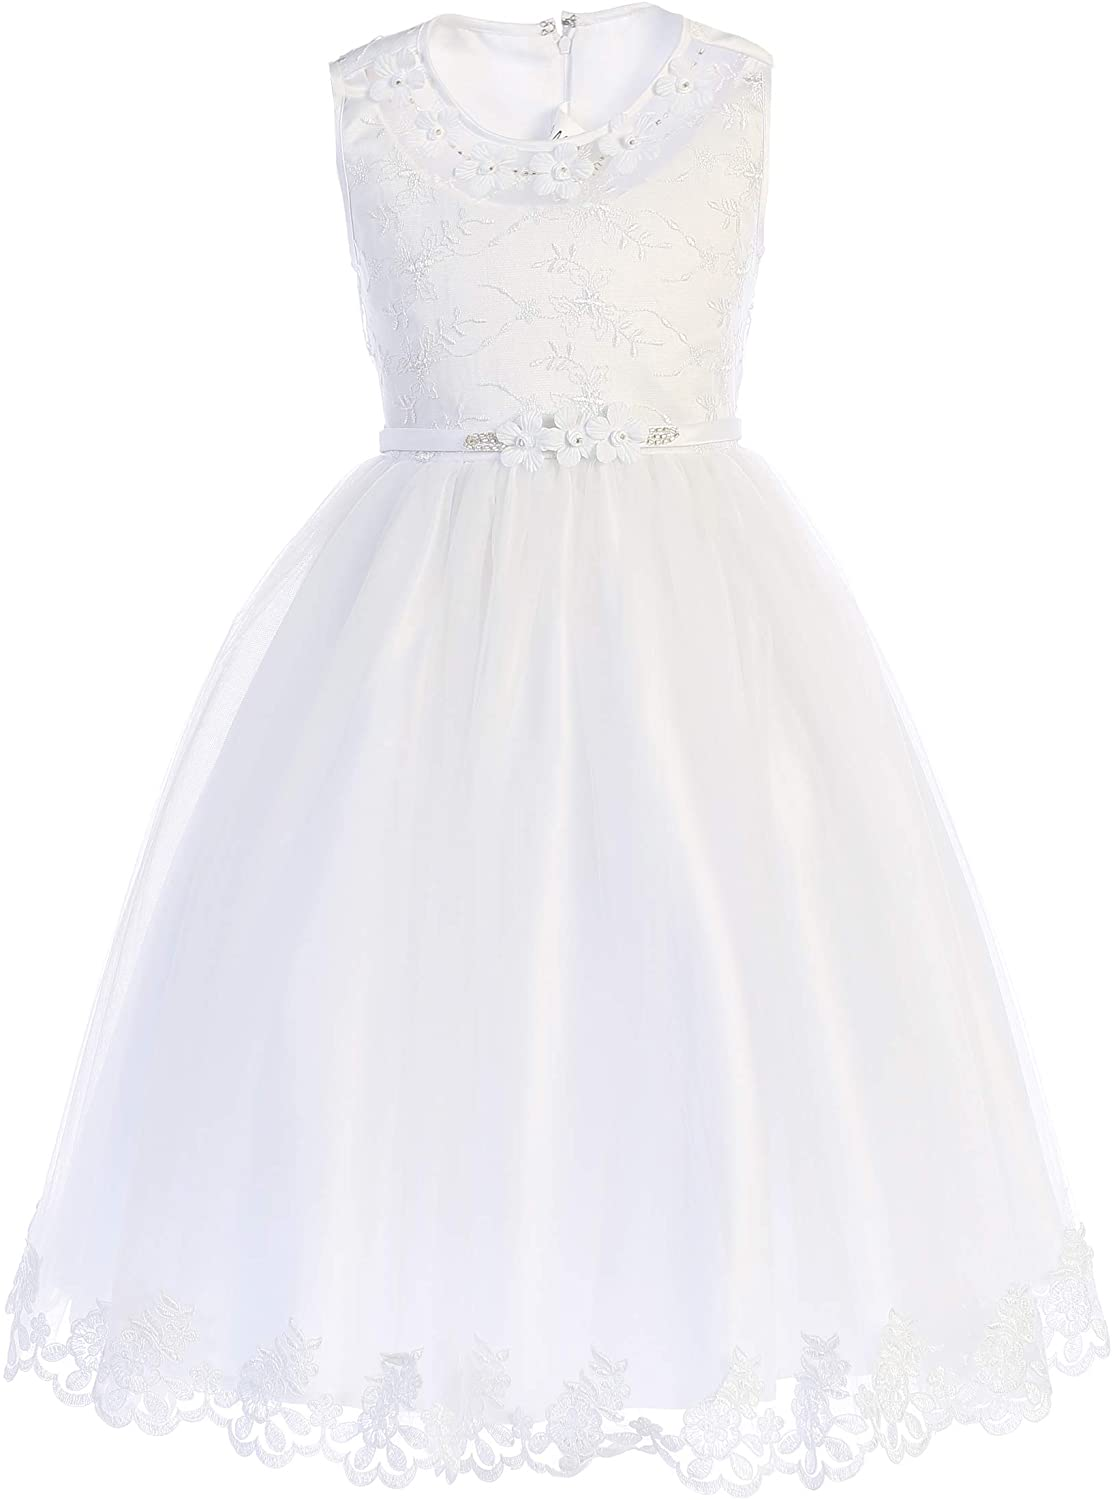 Swea Pea & Lilli First Communion Dresses for Girls Available in Girls 7-16 in White and Plus Size